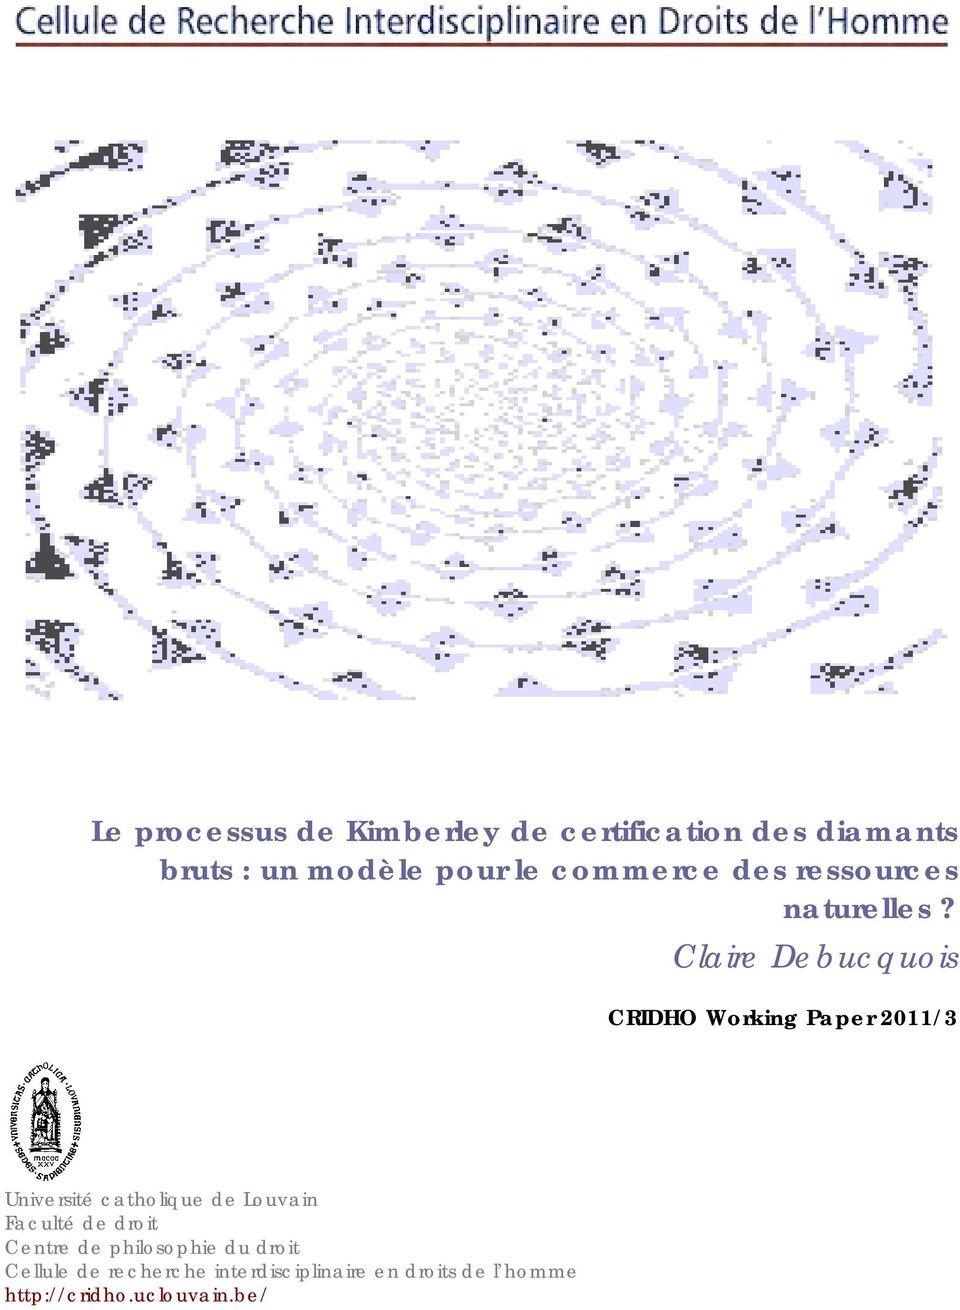 Claire Debucquois CRIDHO Working Paper 2011/3 Université catholique de Louvain